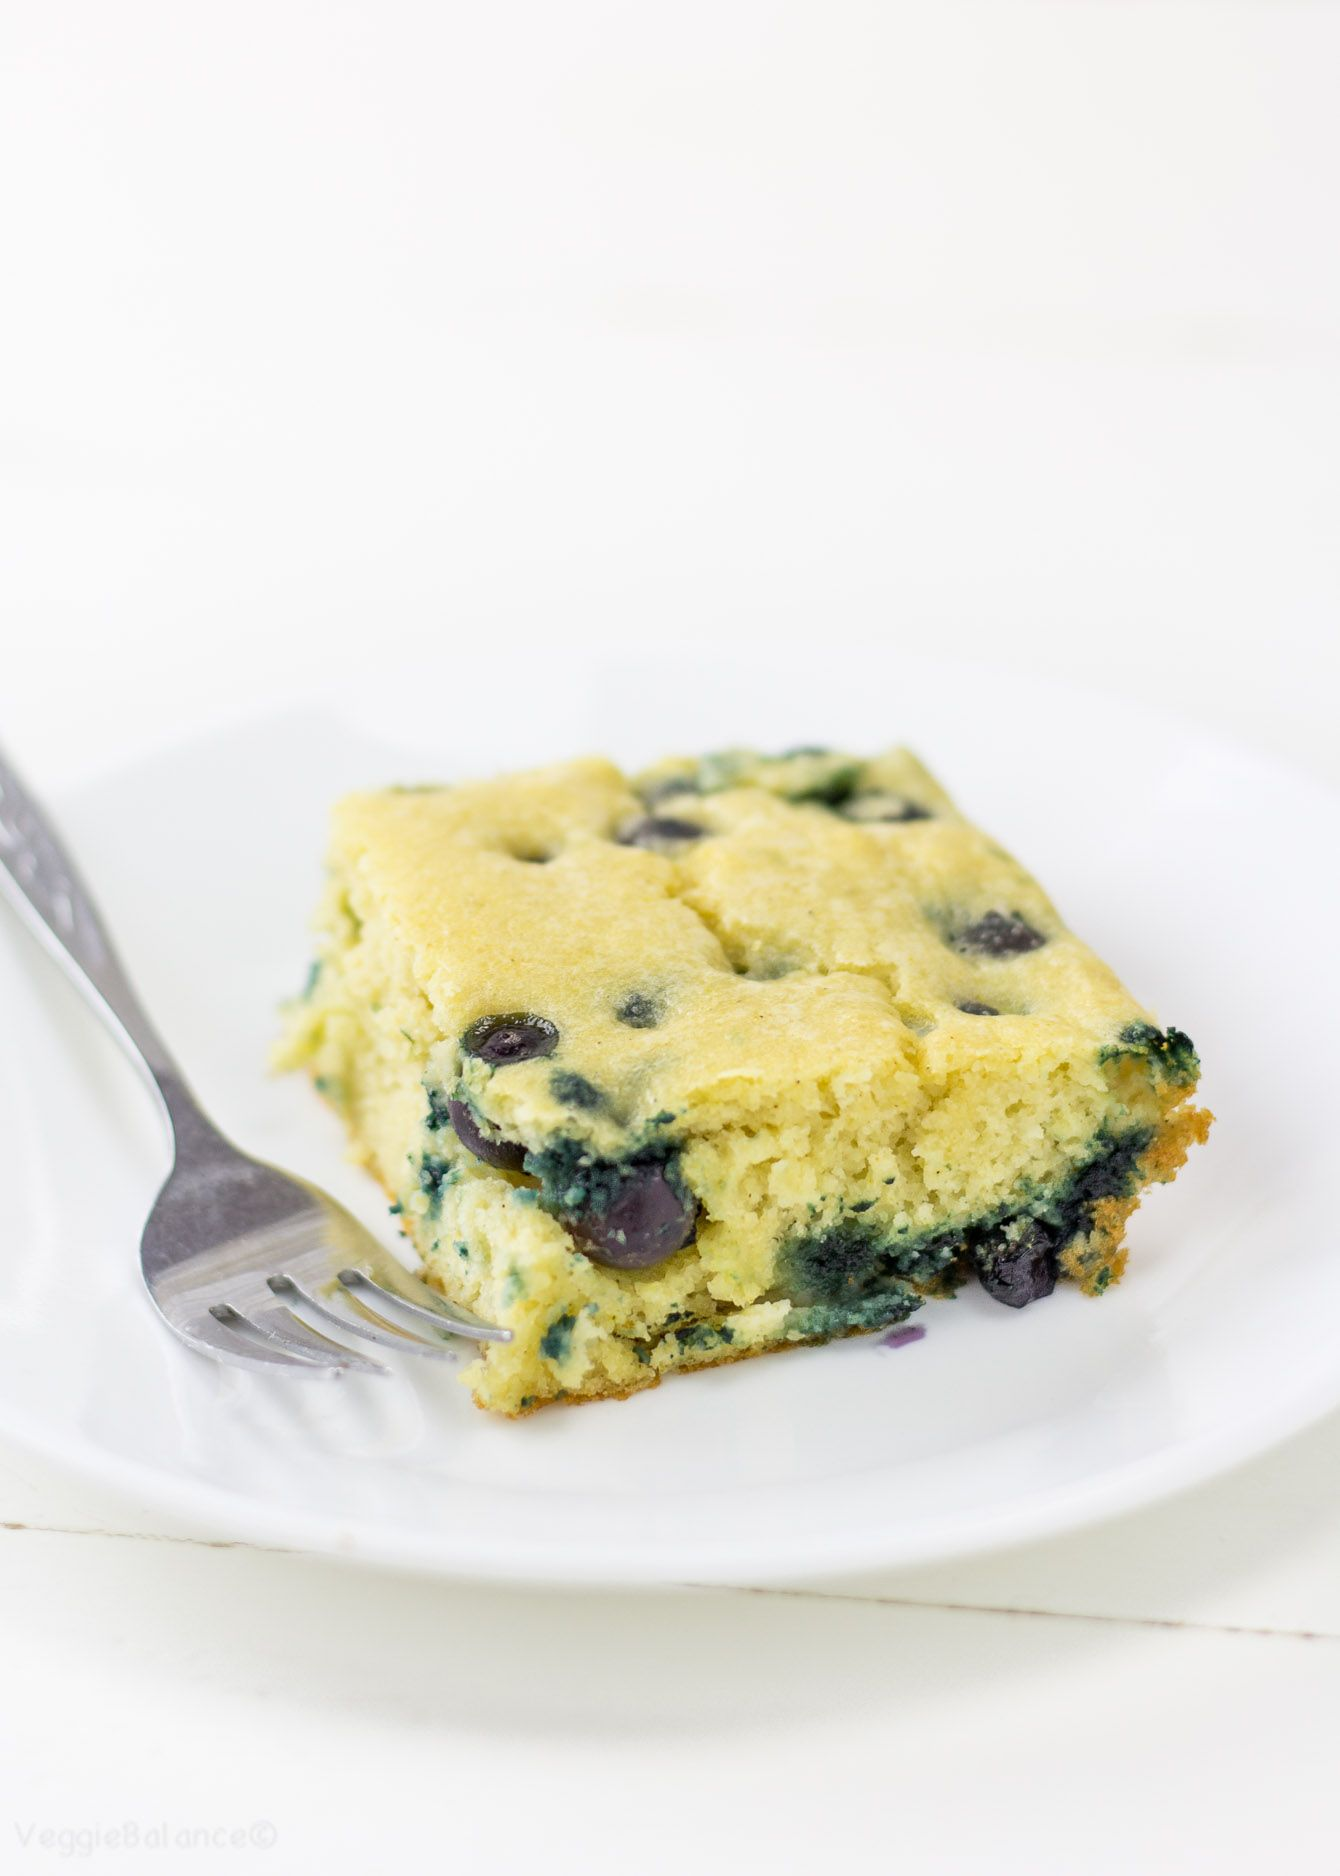 Blueberry Pancake Casserole recipe for those entertaining a crowd. Best brunch recipe ever. Whisk together in a bowl, pour into a 9x13 pan and bake! It is that easy, not to mention a much healthier option! (Gluten Free, Dairy Free, Low Sugar ) #pancakecasserole